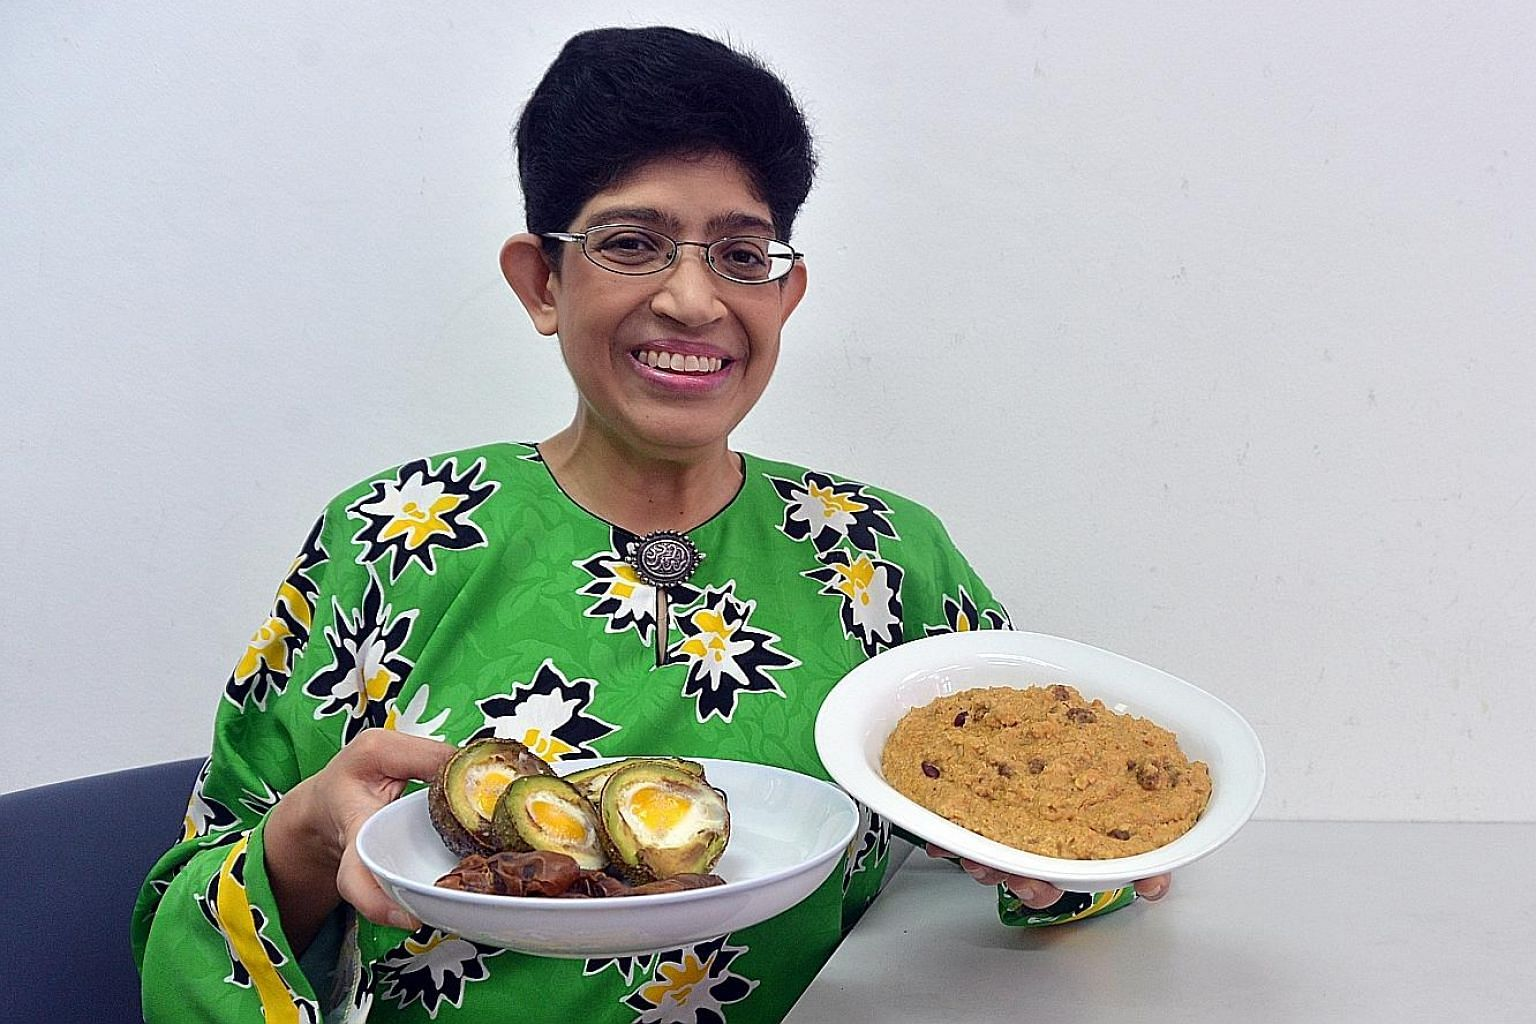 Among the dishes Associate Professor Fatimah Lateef came up with are baked avocado with egg (far left) and spicy oat porridge.